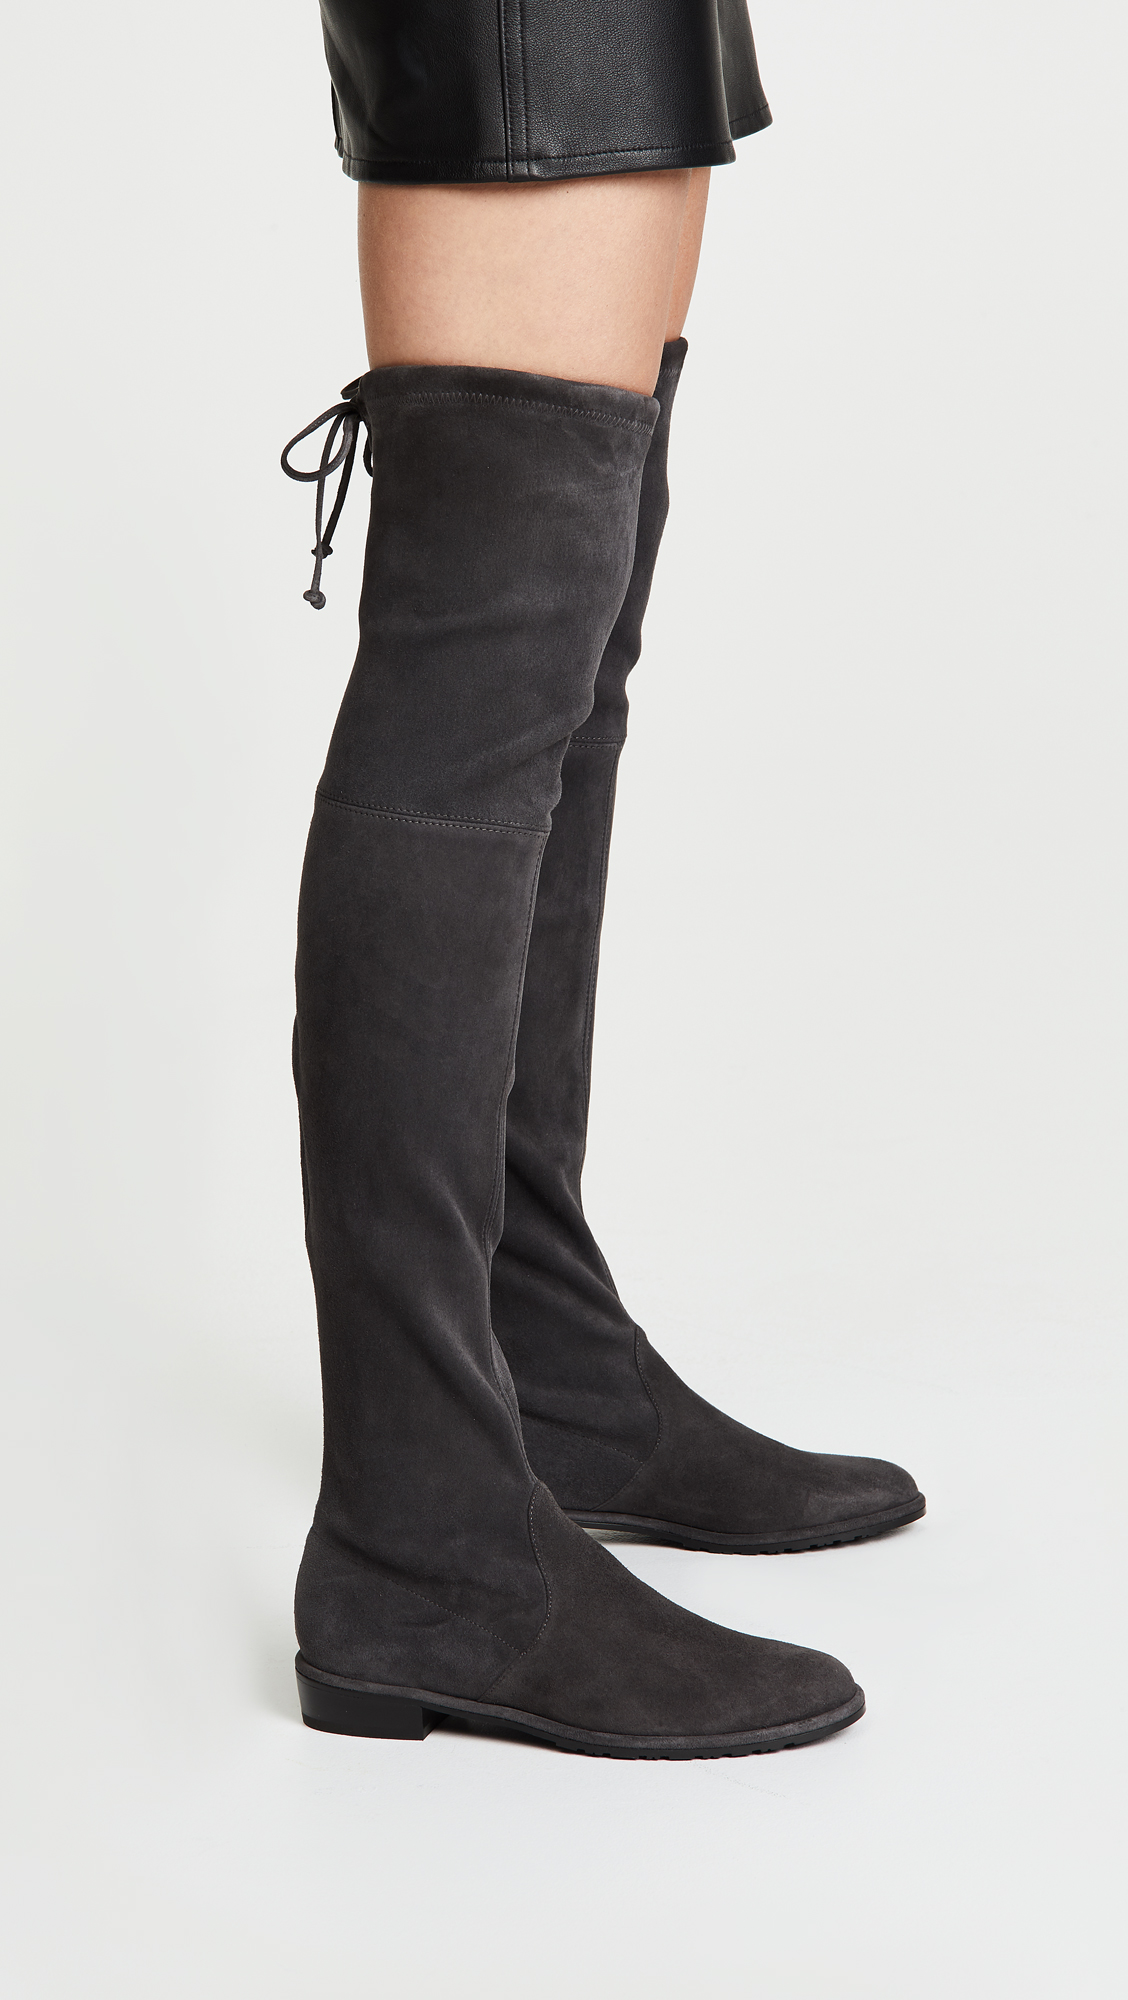 30761c476f9 Stuart Weitzman Lowland Over the Knee Boots